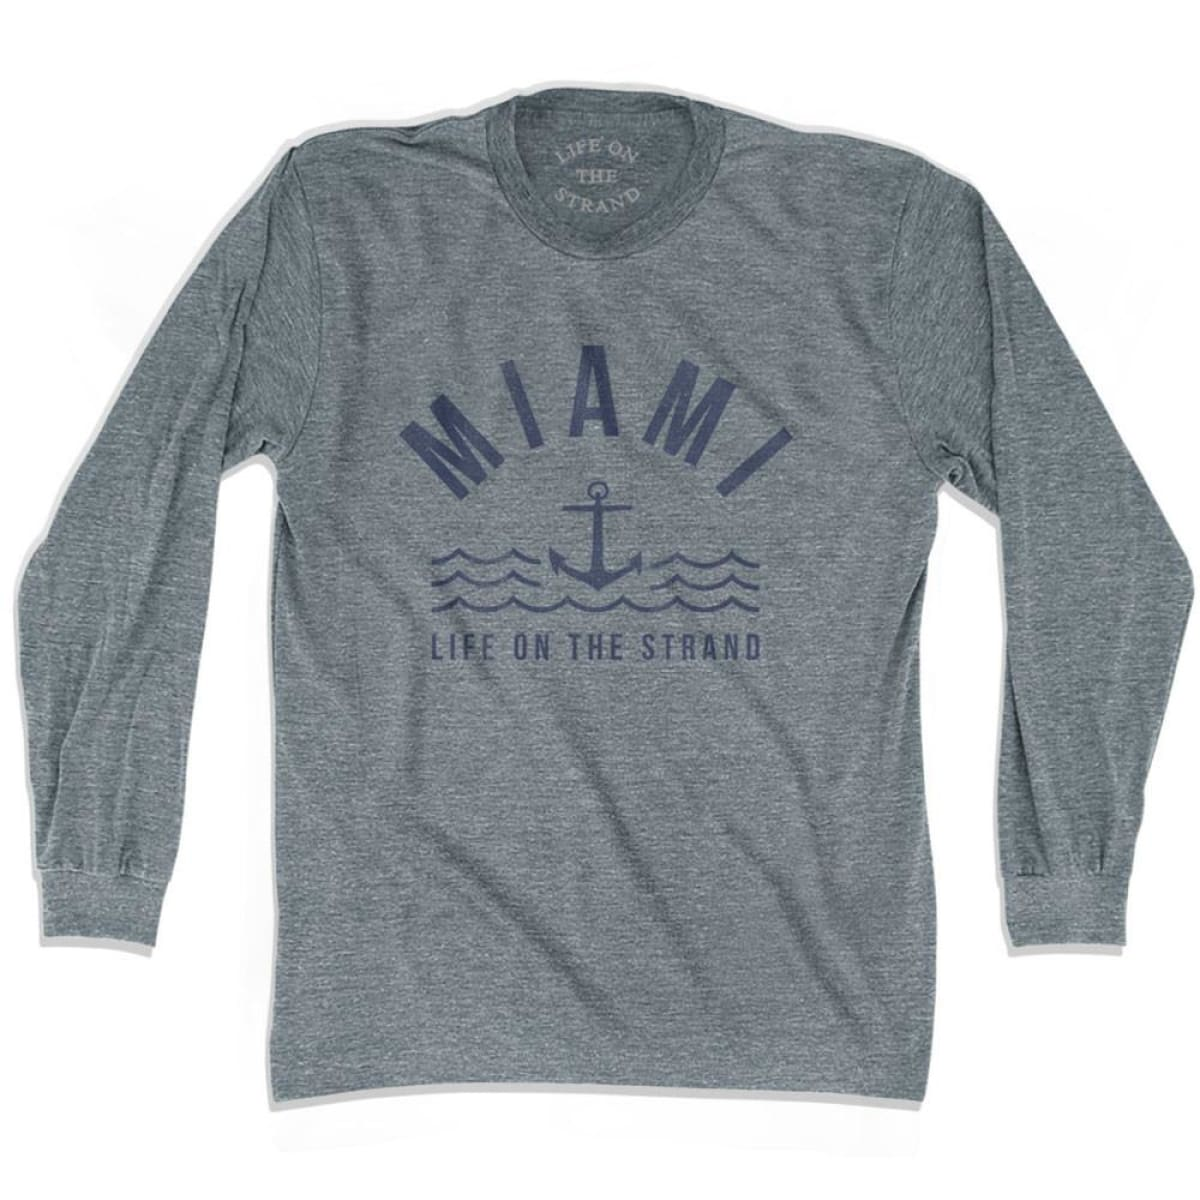 Miami Anchor Life on the Strand Long Sleeve T-shirt - Athletic Grey / Adult X-Small - Life on the Strand Anchor